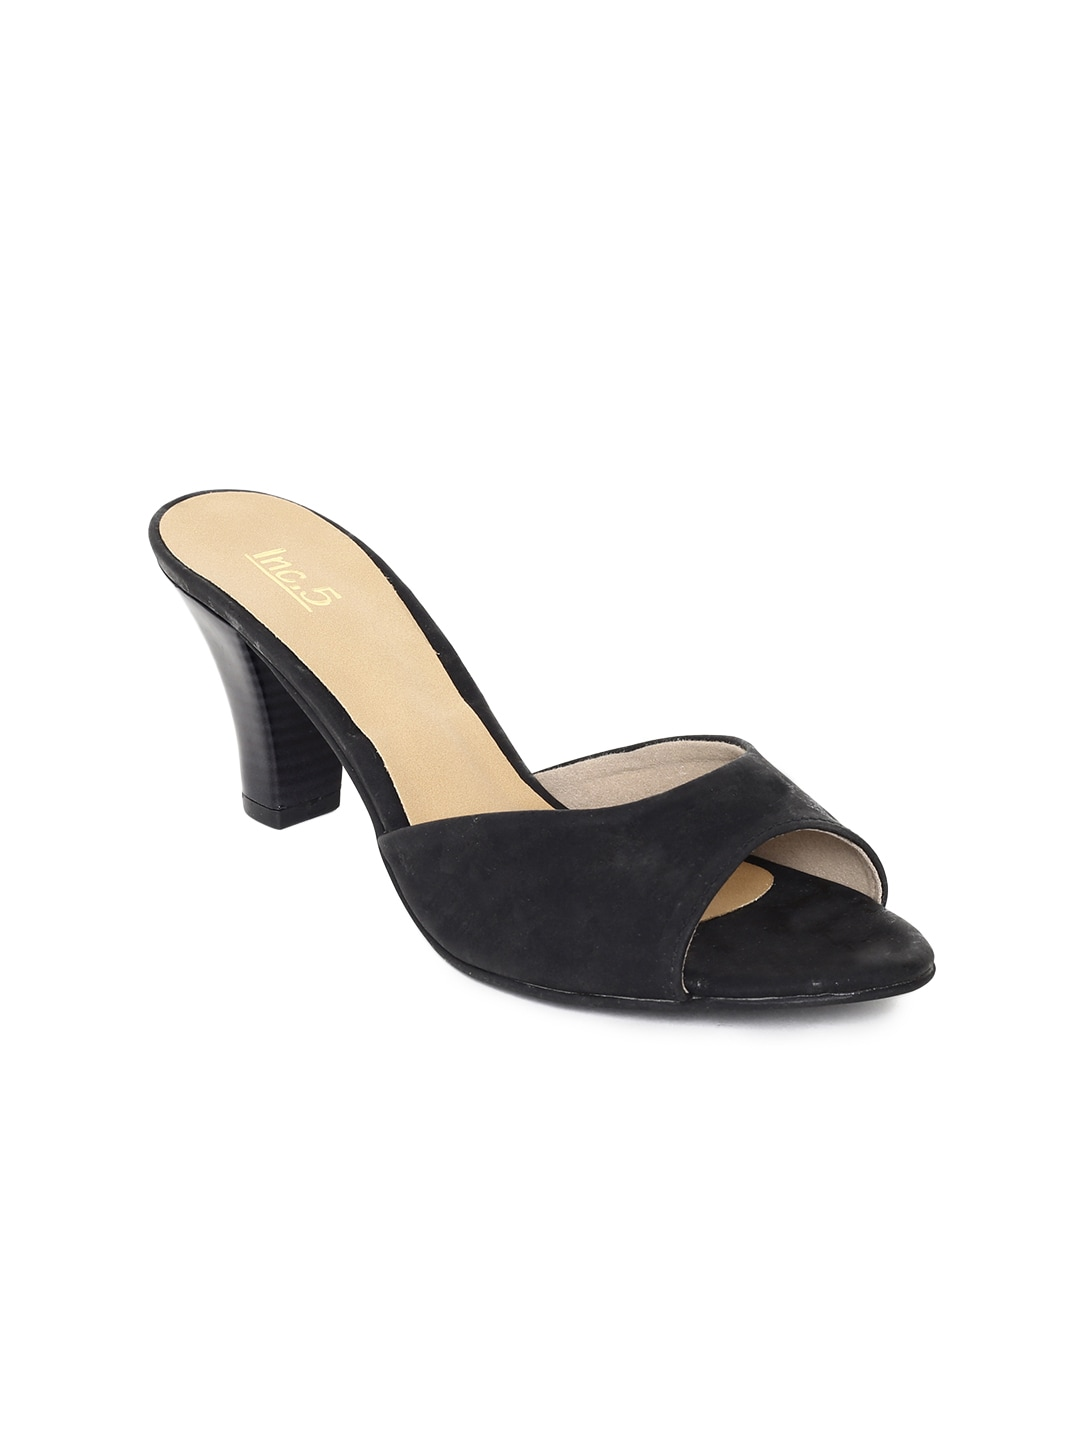 dff90a91382 Women Footwear - Buy Footwear for Women   Girls Online